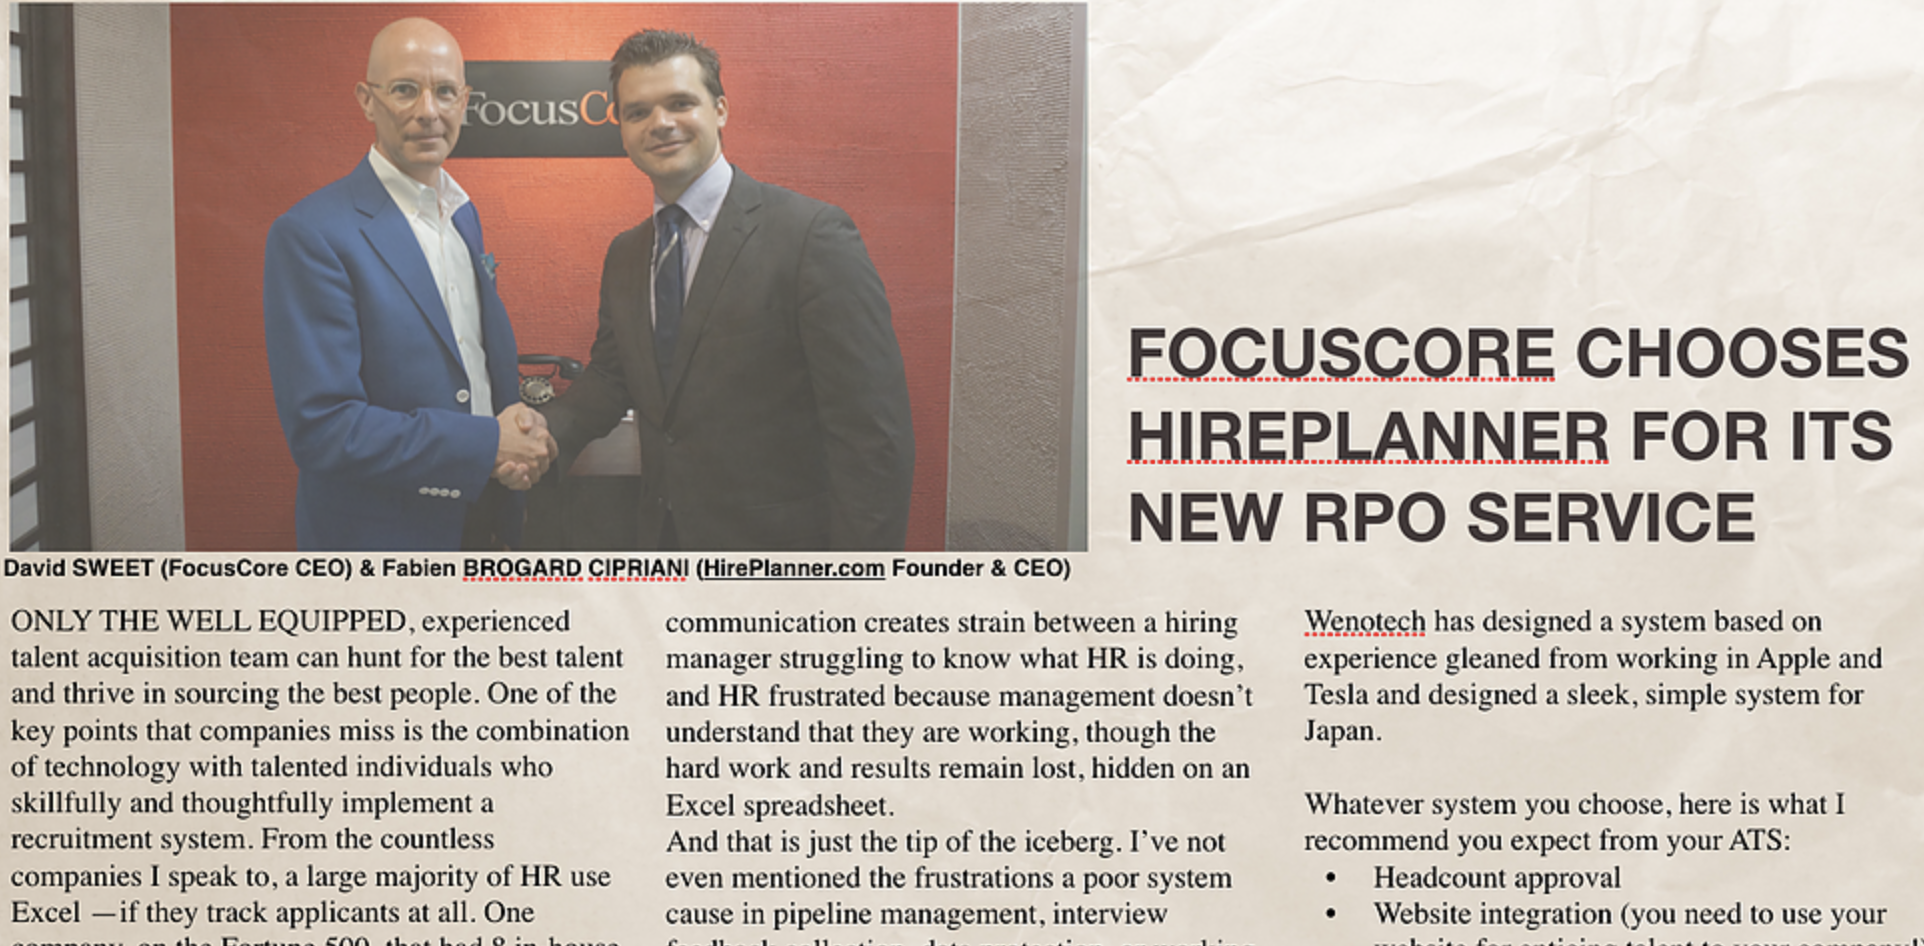 FocusCore selects HirePlanner to support its RPO business